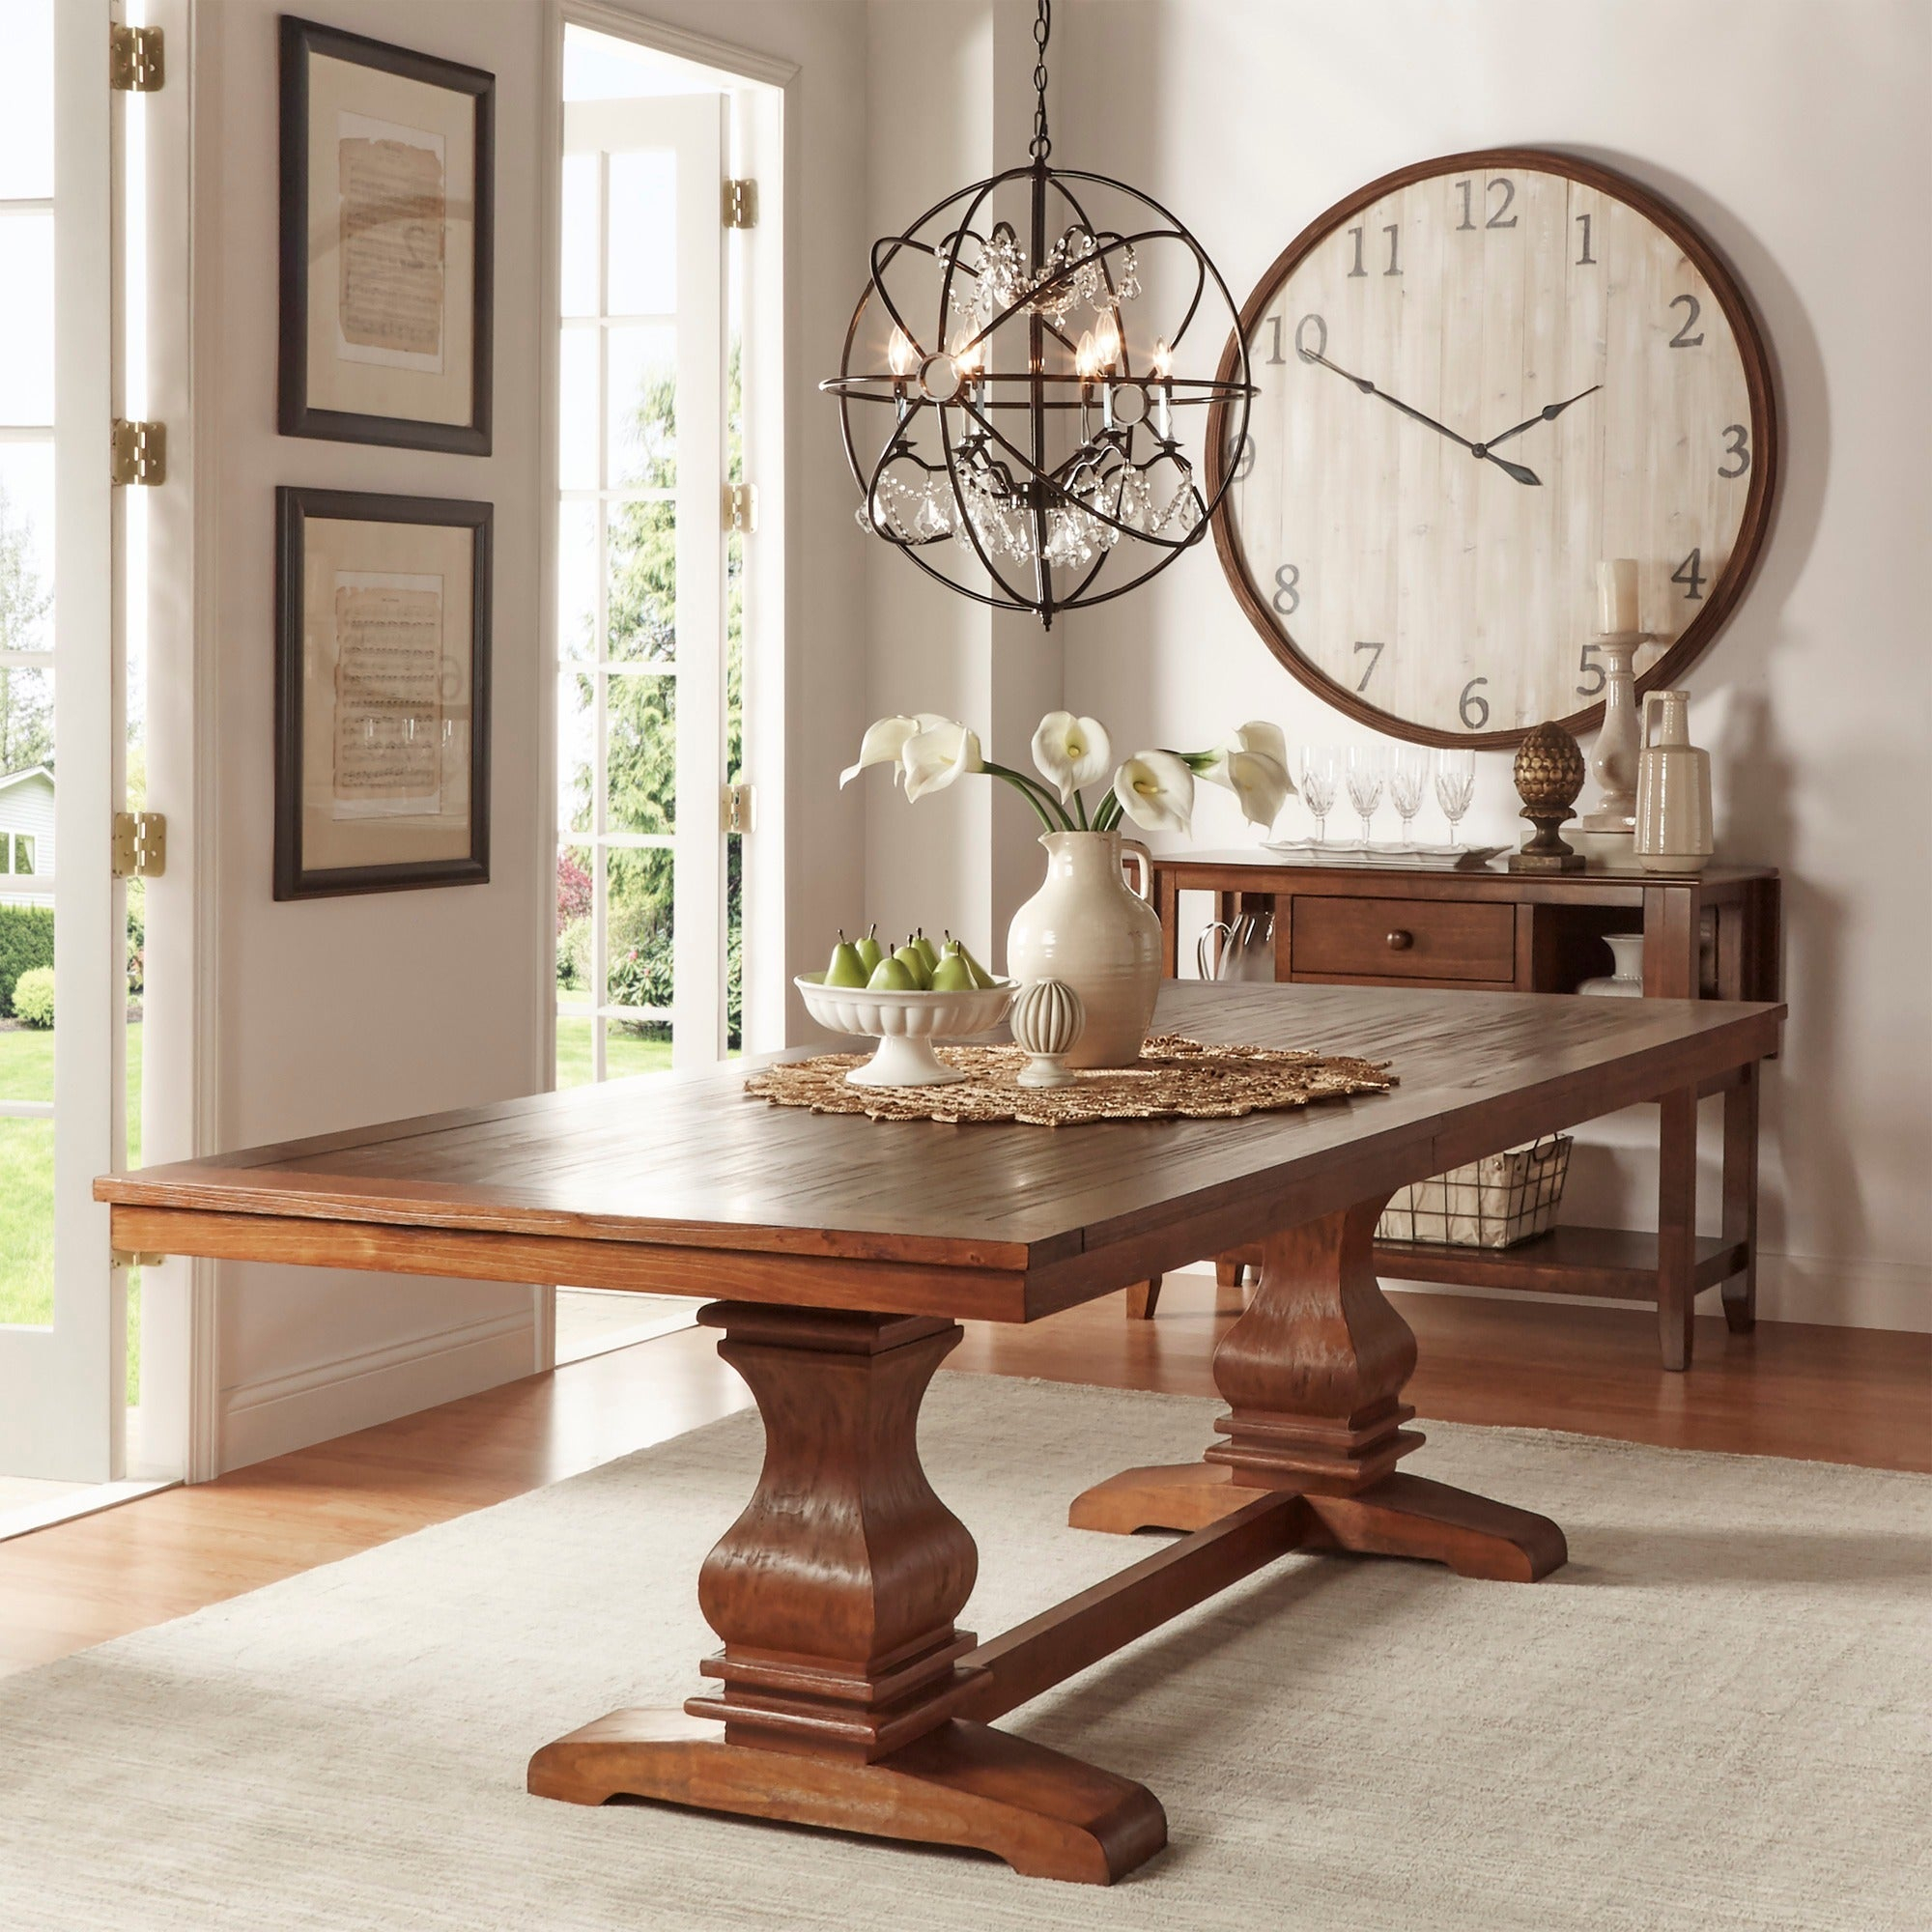 Atelier Burnished Brown Pedestal Extending Dining Tableinspire Q Classic Within Most Popular Gray Wash Banks Pedestal Extending Dining Tables (View 12 of 25)